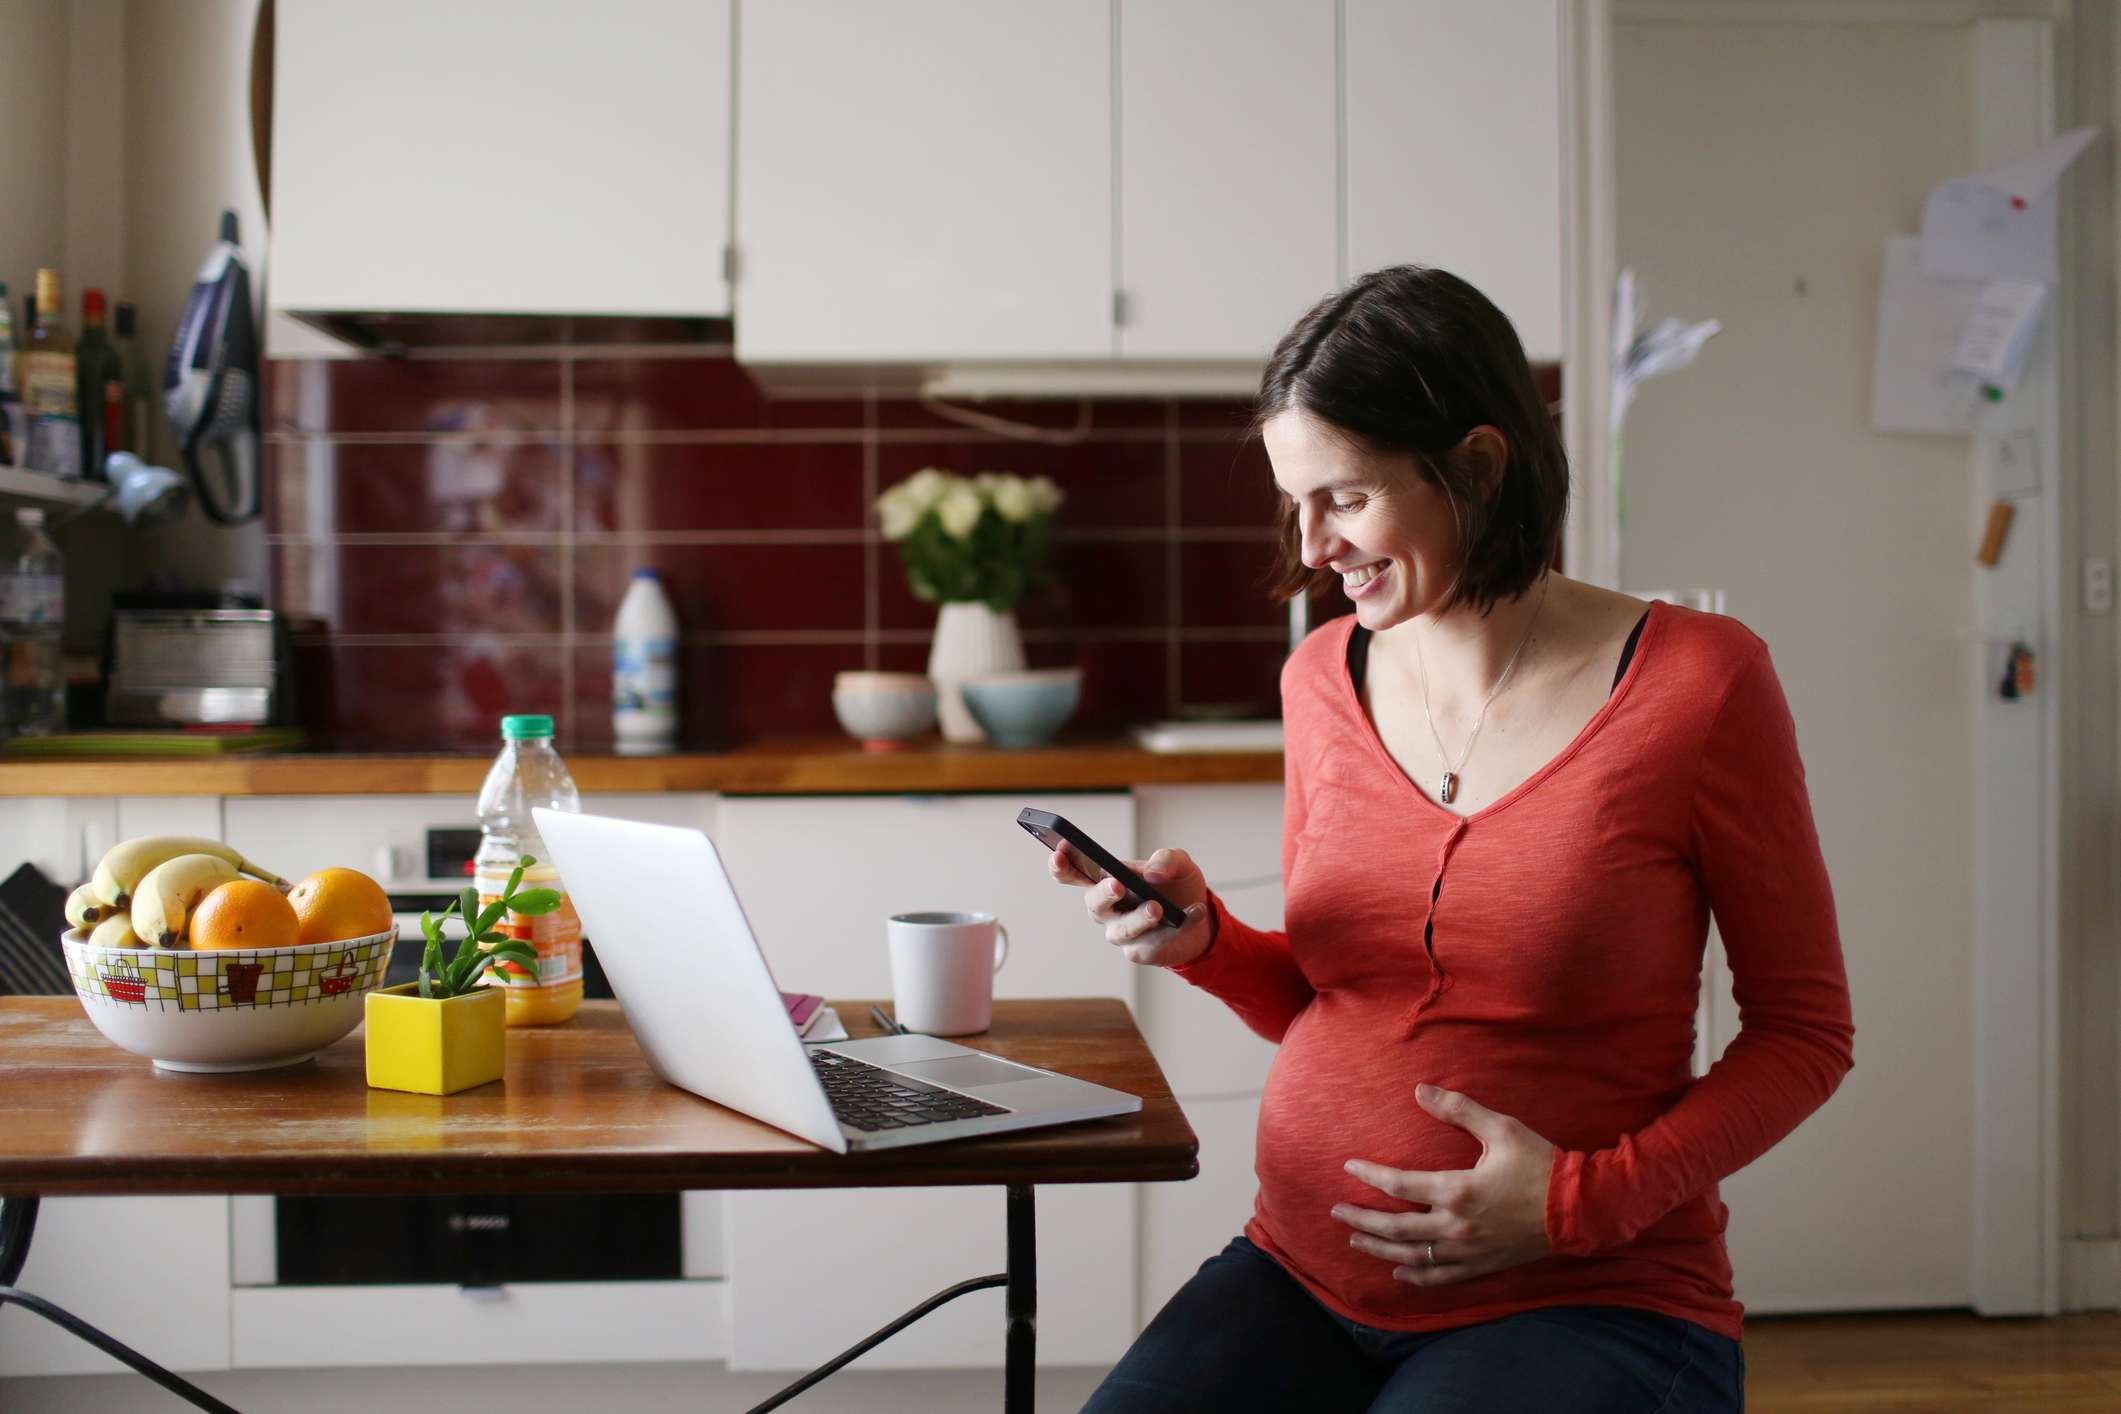 A pregnant woman looking at her phone